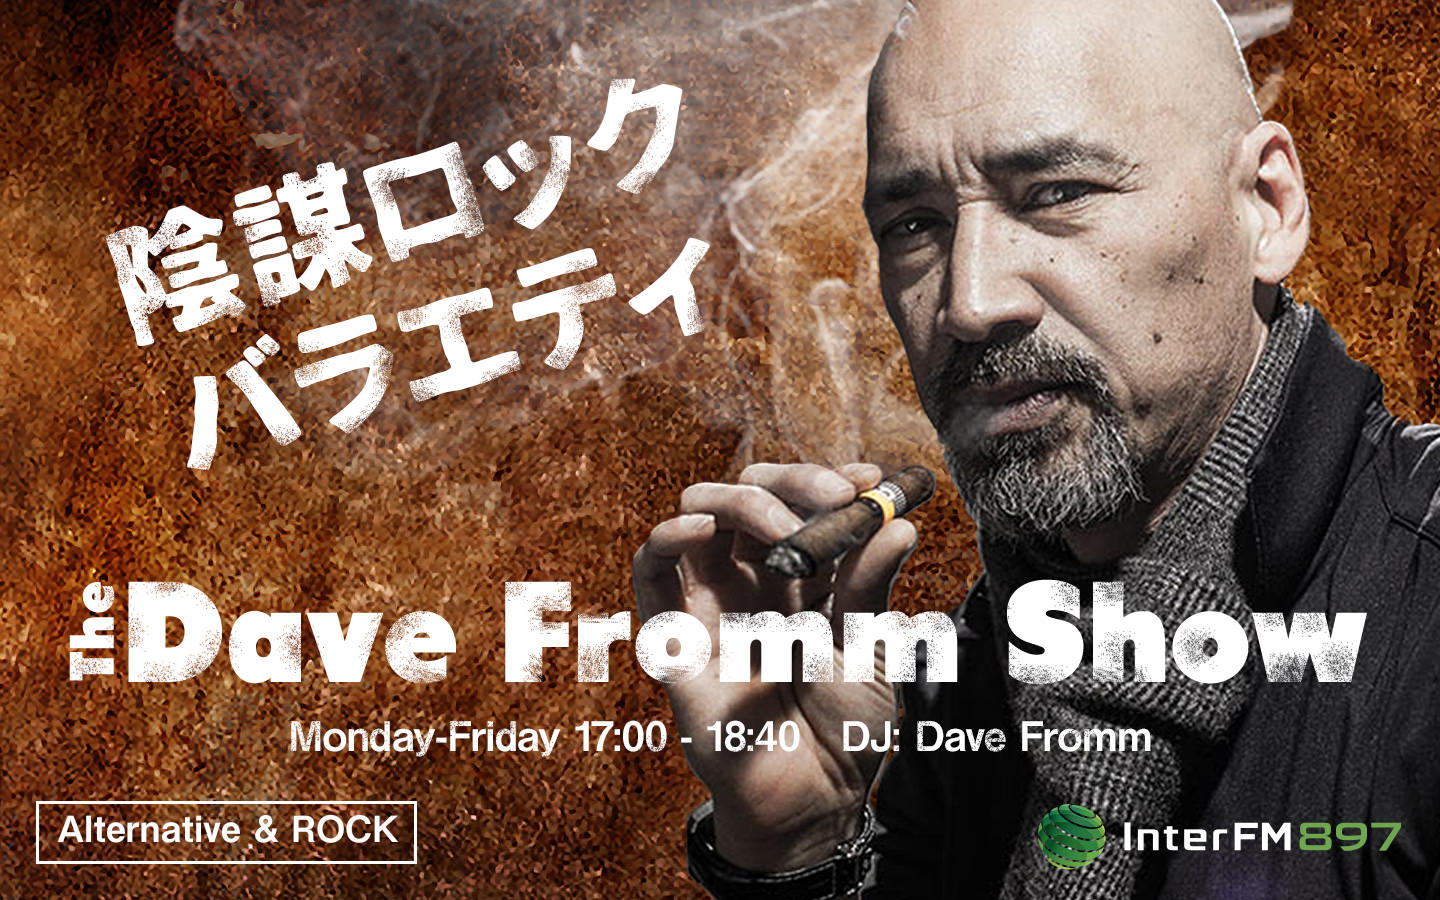 The Dave Fromm Show